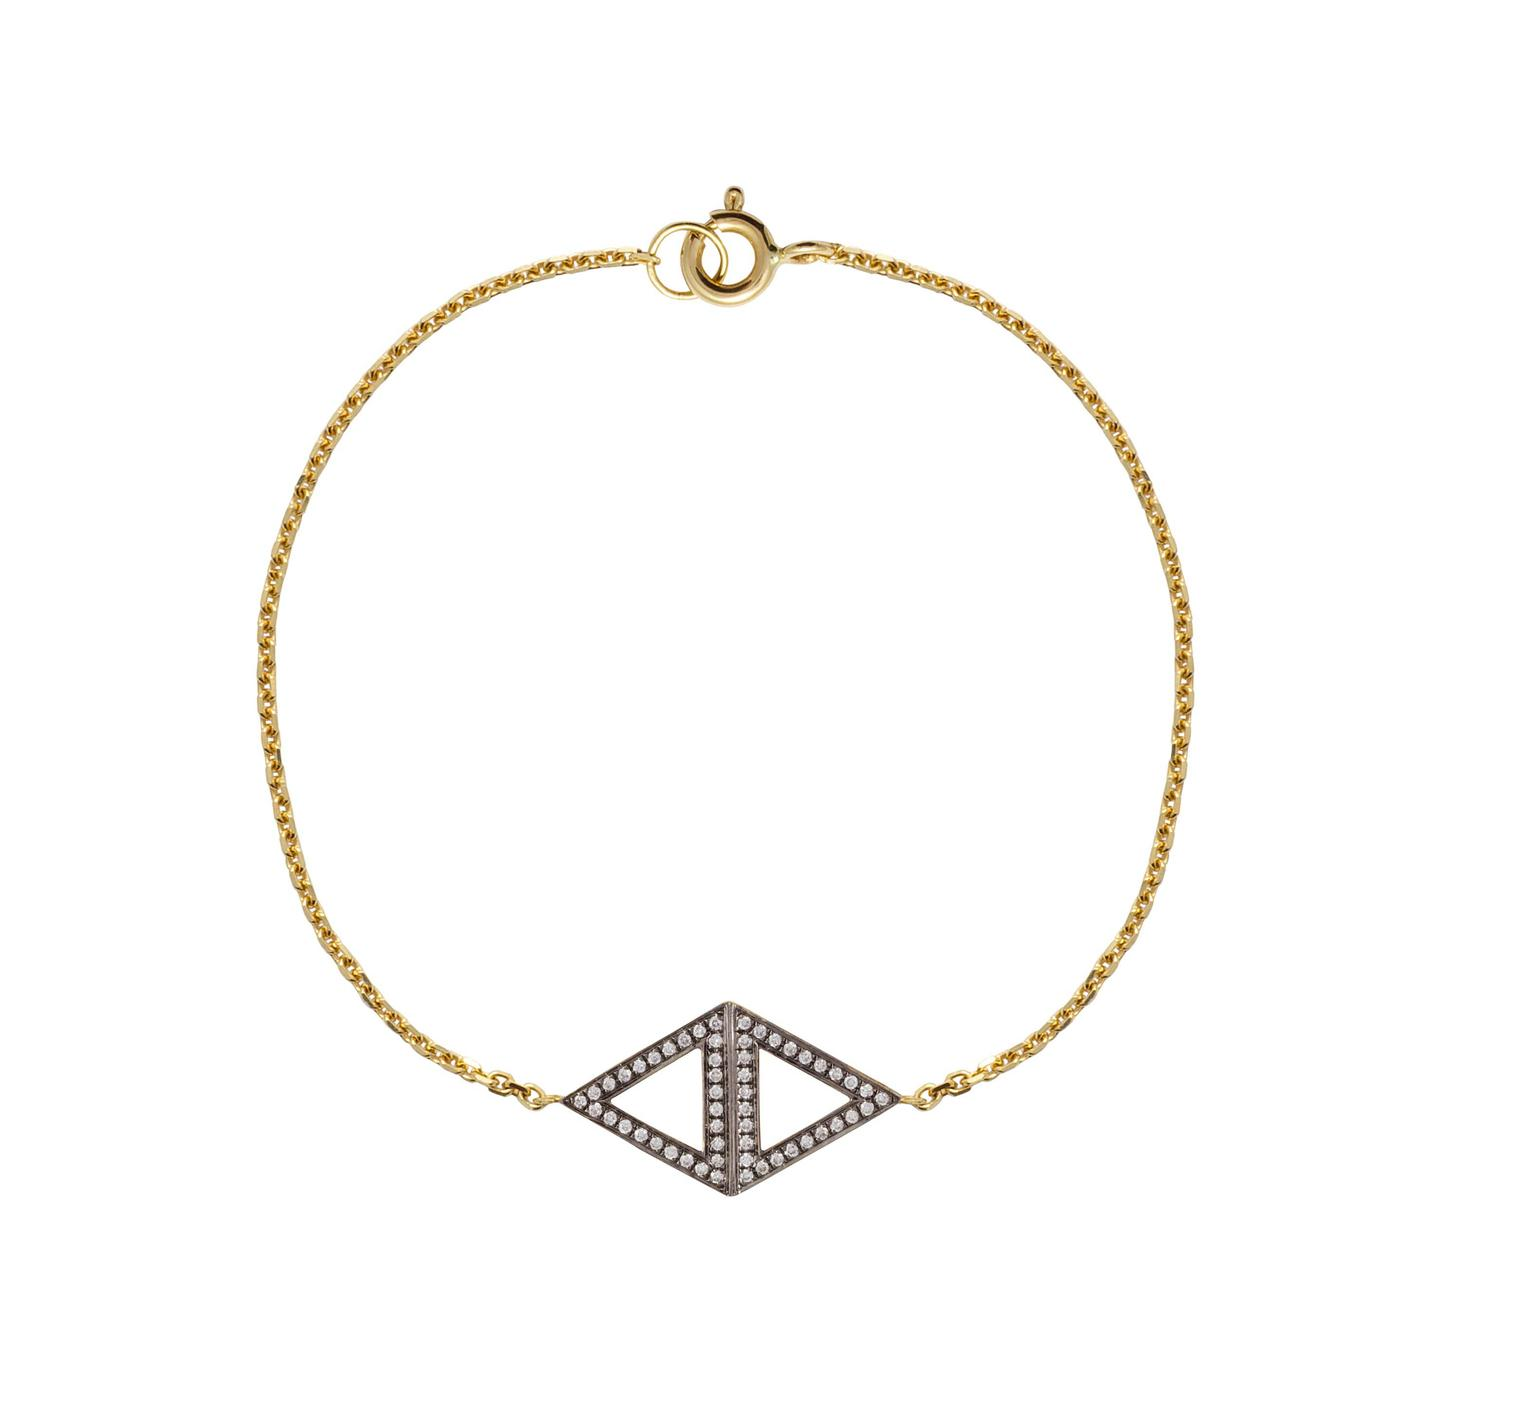 Noor Fares Rhombus bracelet in yellow gold with white diamonds.